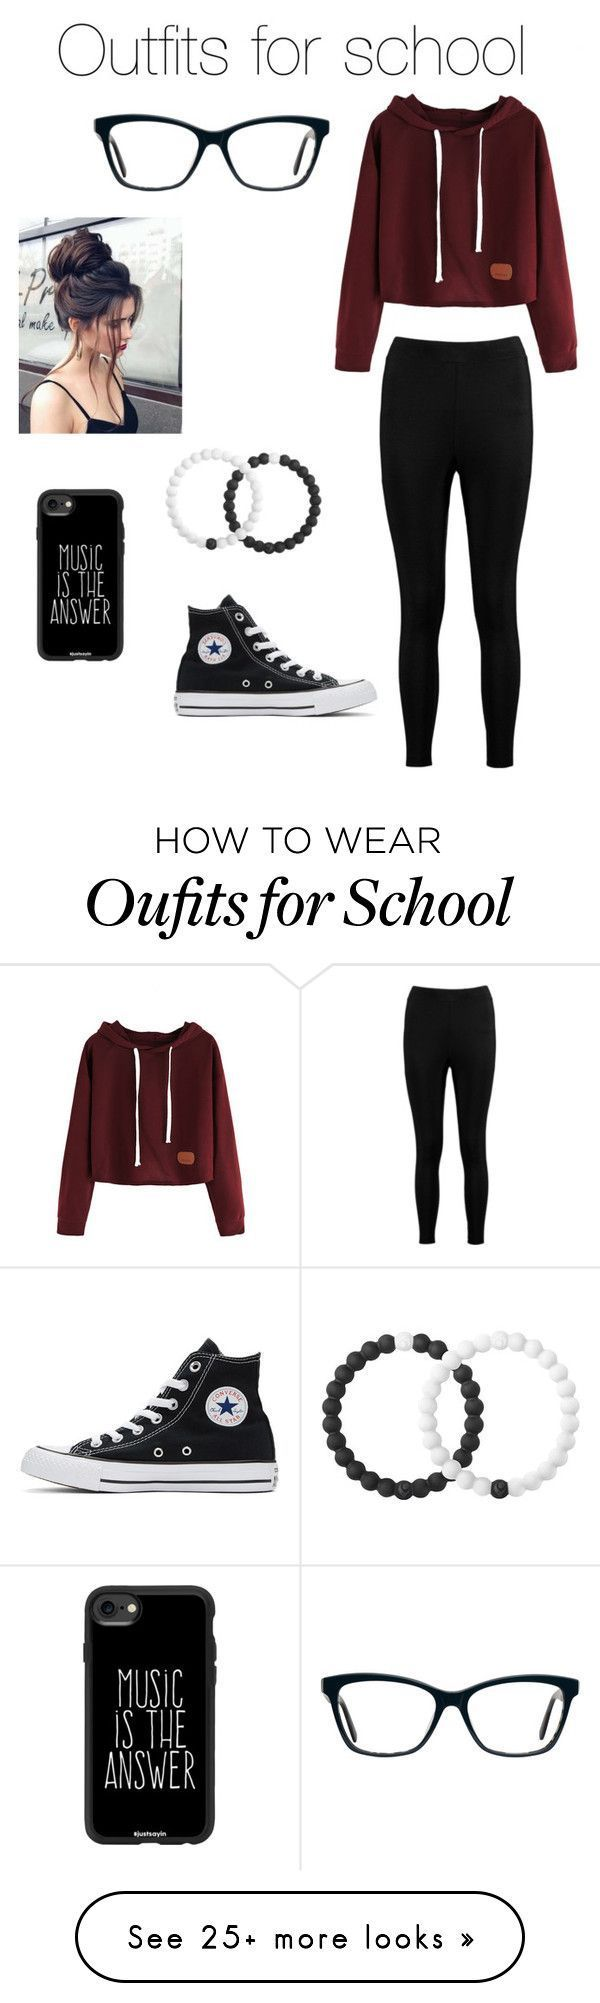 School outfits from marissalinda on Polyvore with Lokai Casetify Boohoo and Converse